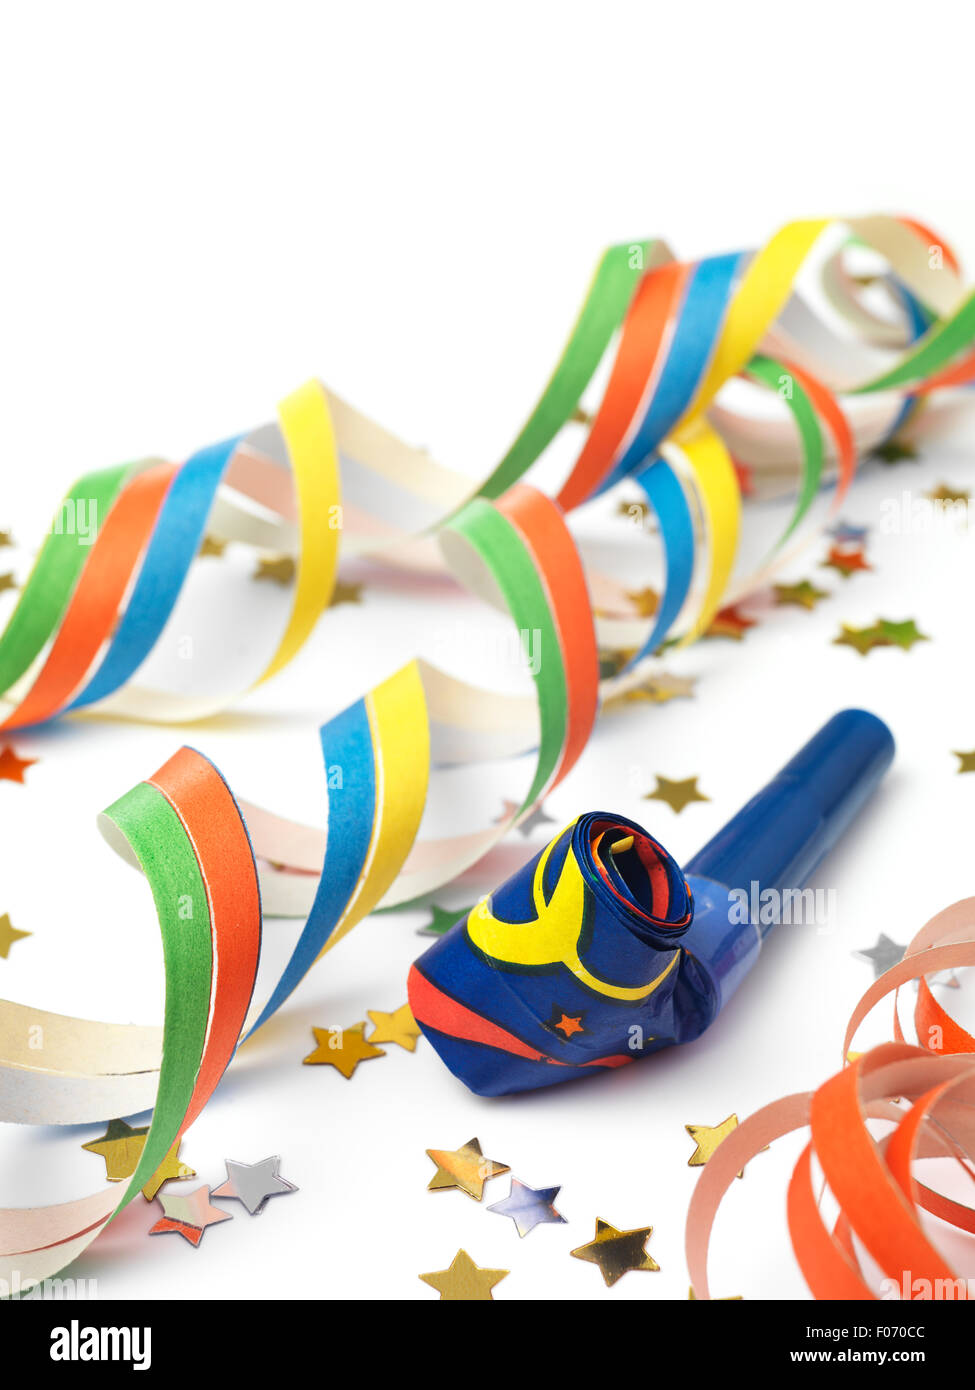 Party Horn Blower with streamers - Stock Image